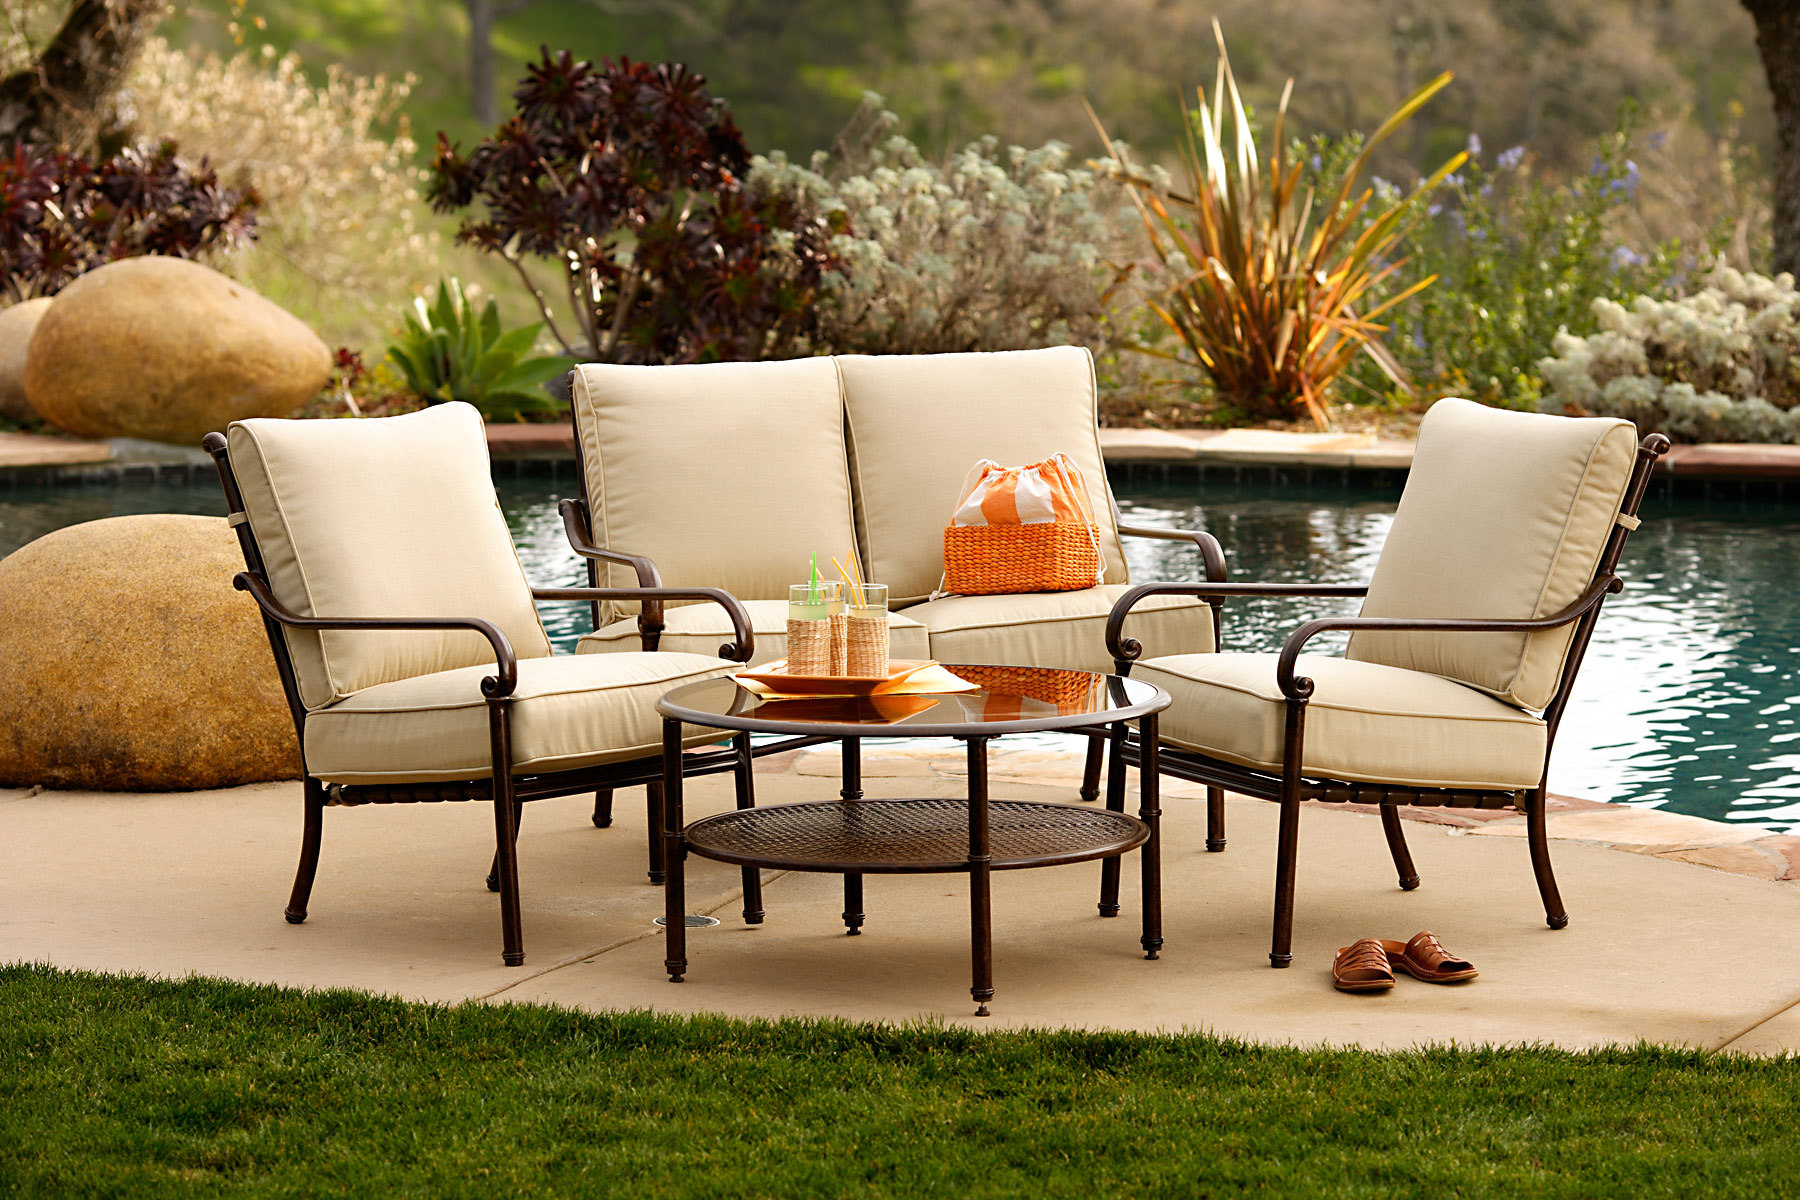 Metal-Patio-Furniture-Sets-for-Outdoor-Small-Spaces